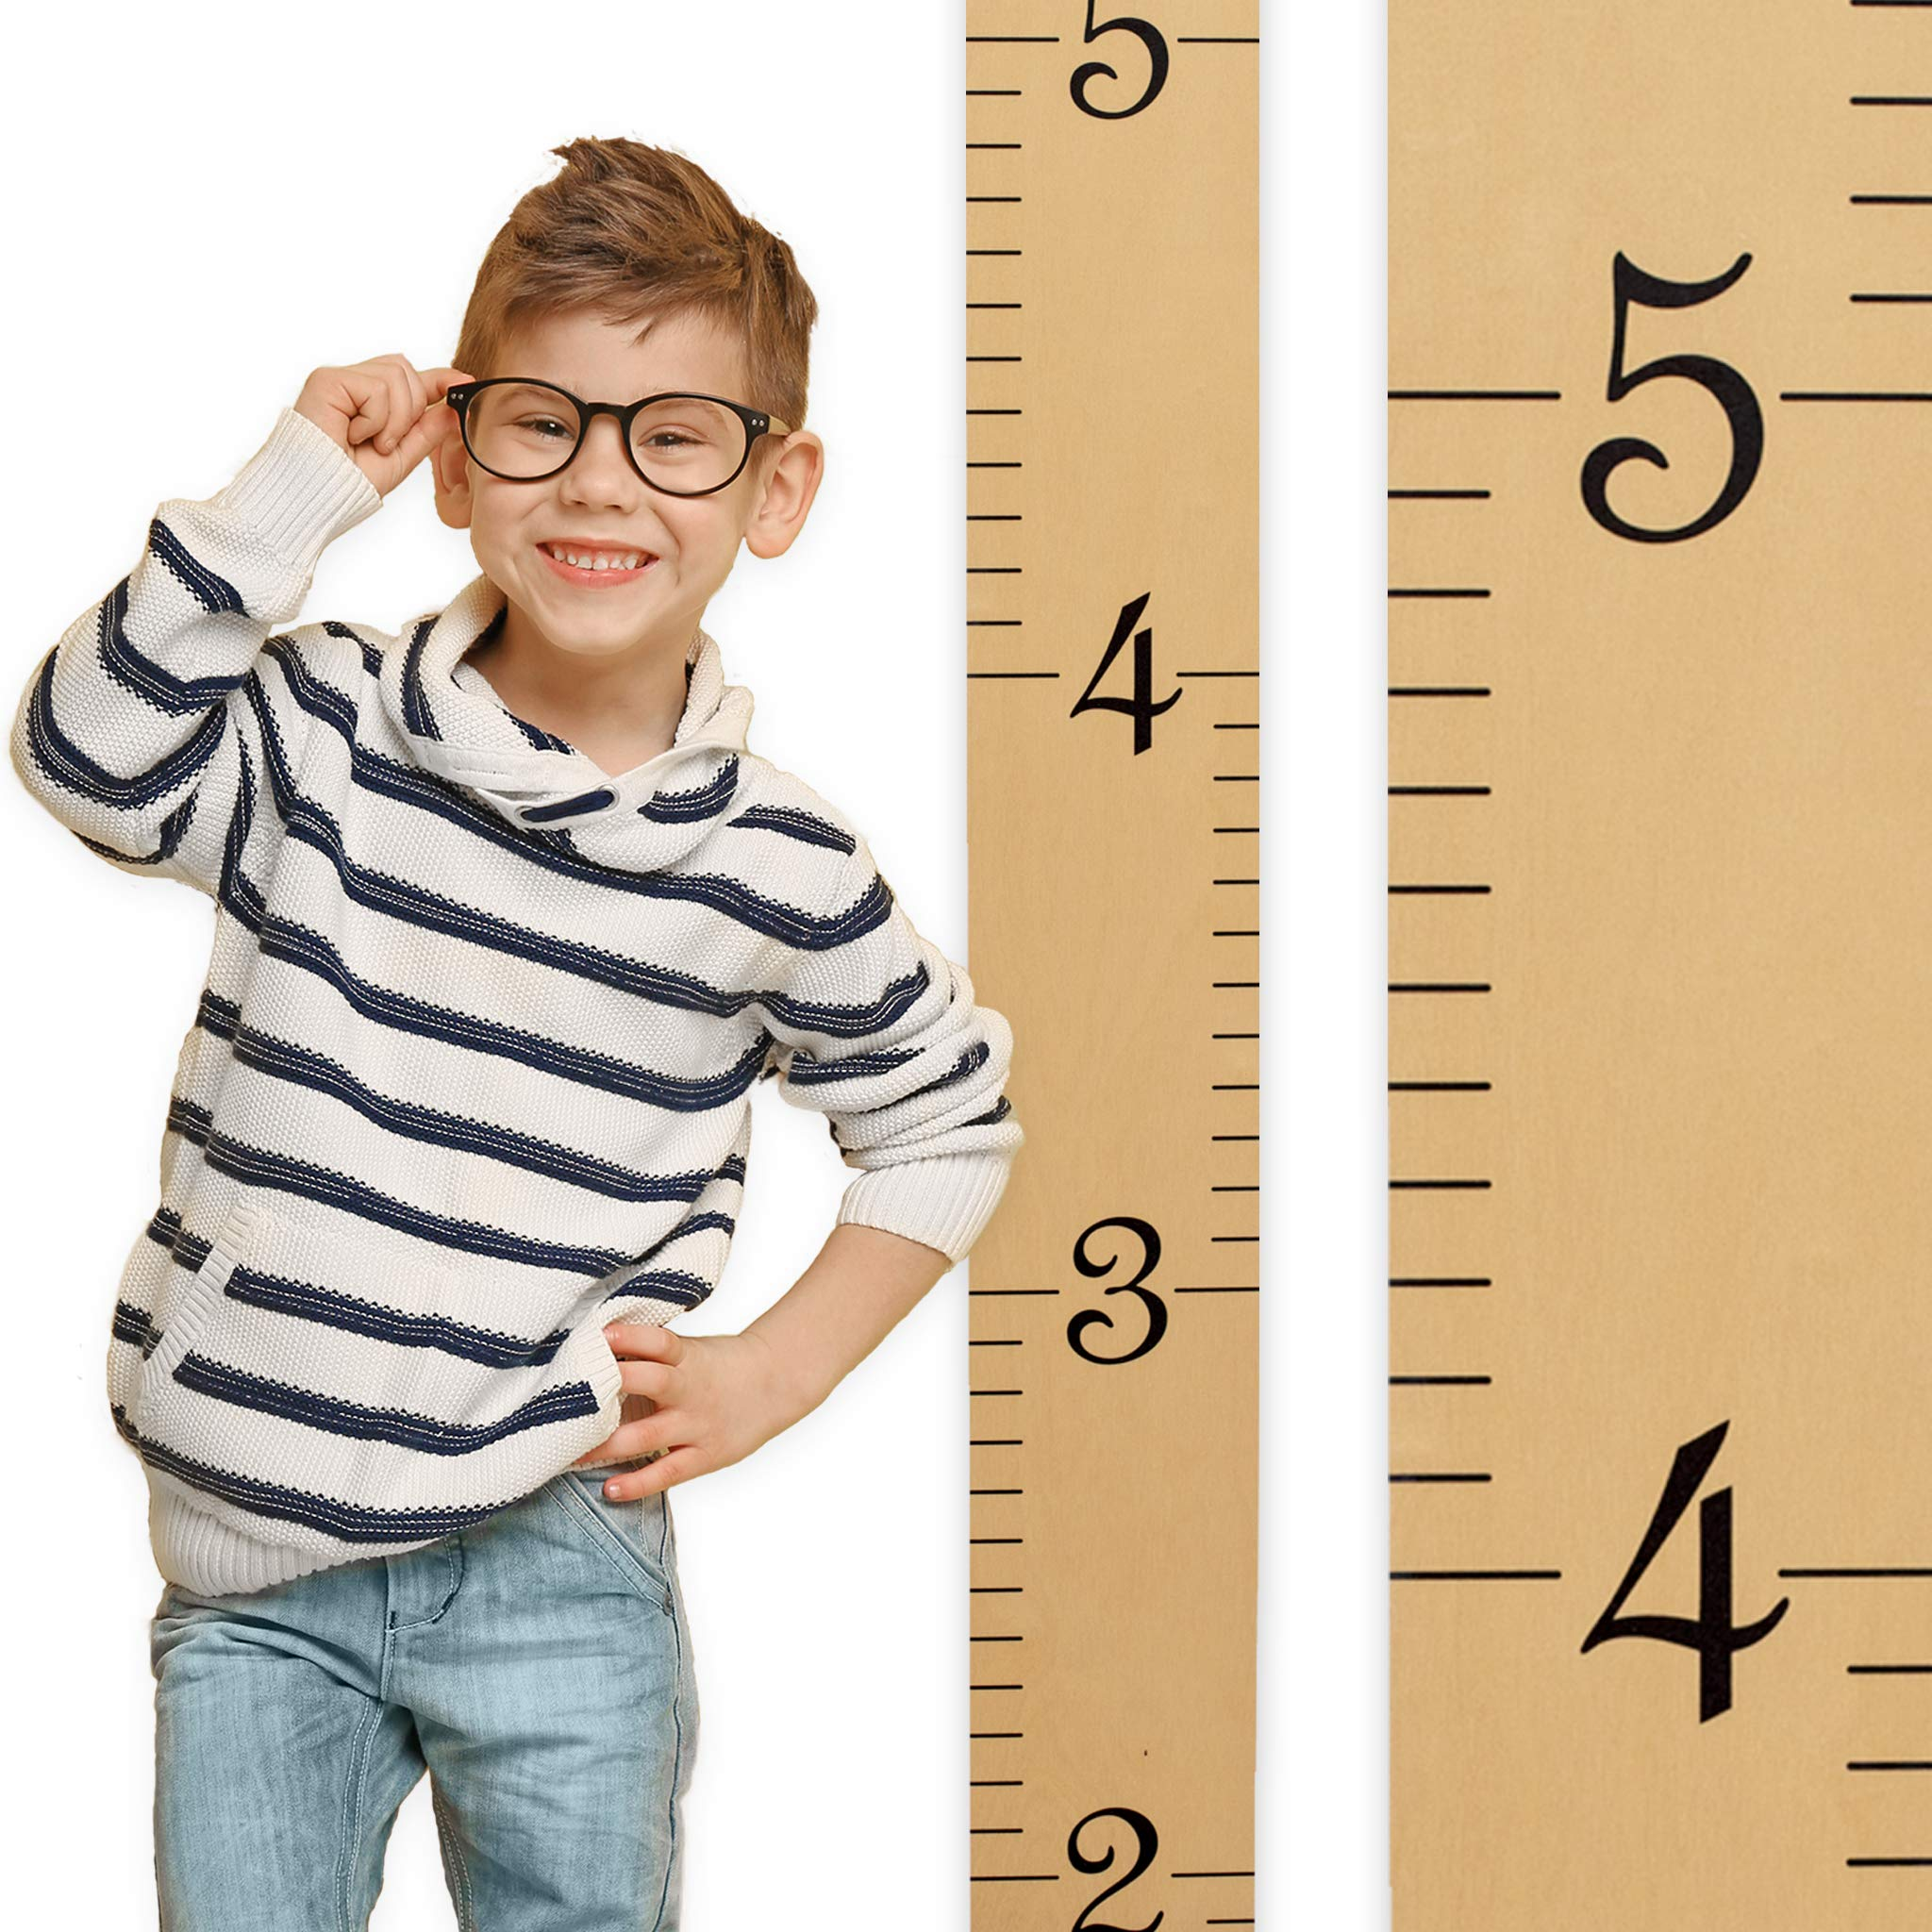 Growth Chart Art | Growth Chart Ruler Kids Height Chart for Boys + Girls | Measuring Kids Height Wall Décor | Honey Maple Ruler with Black Numerals